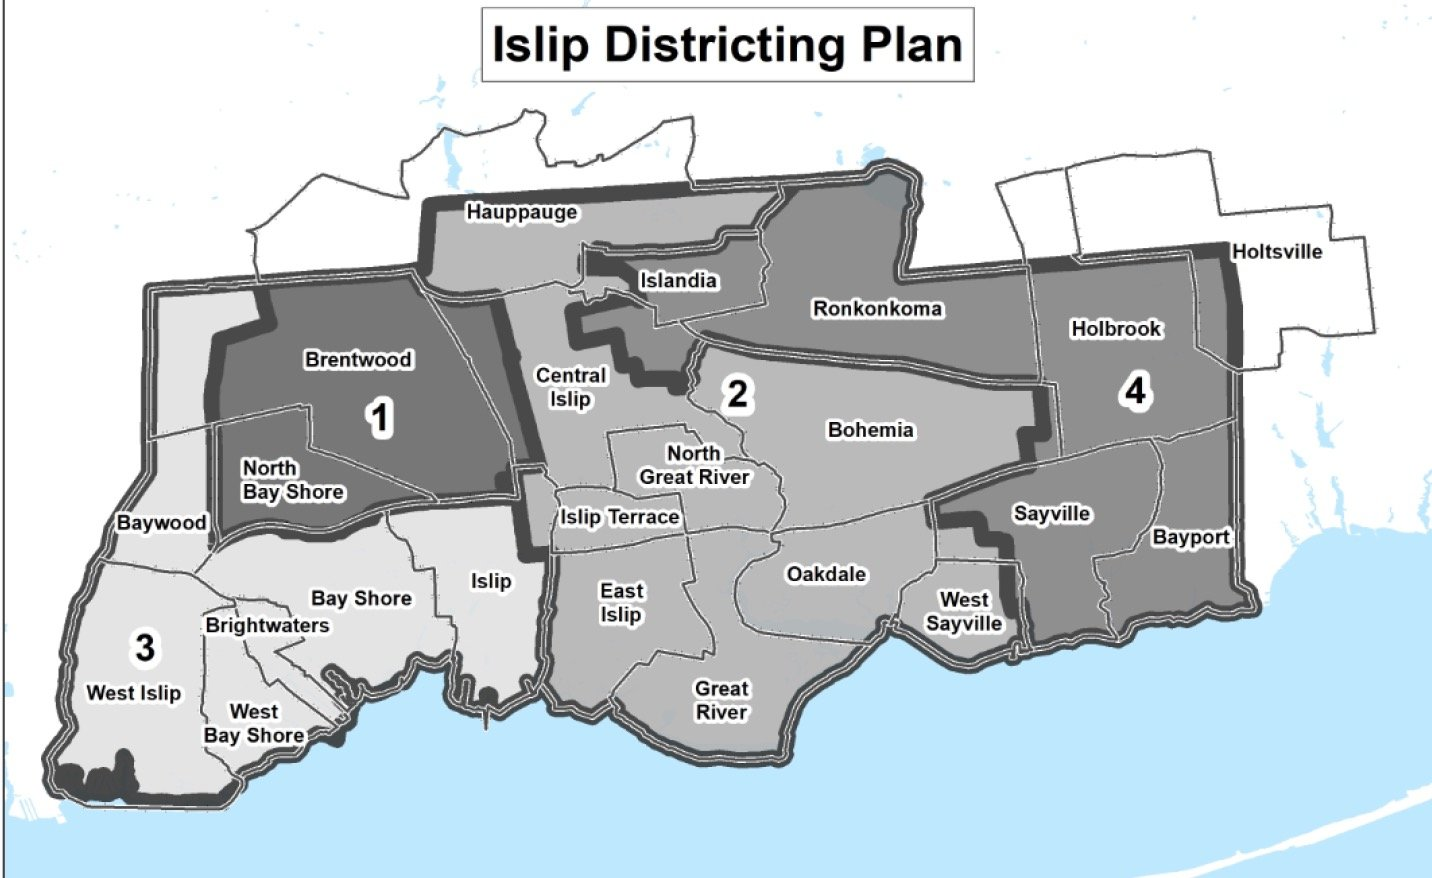 The current district map.